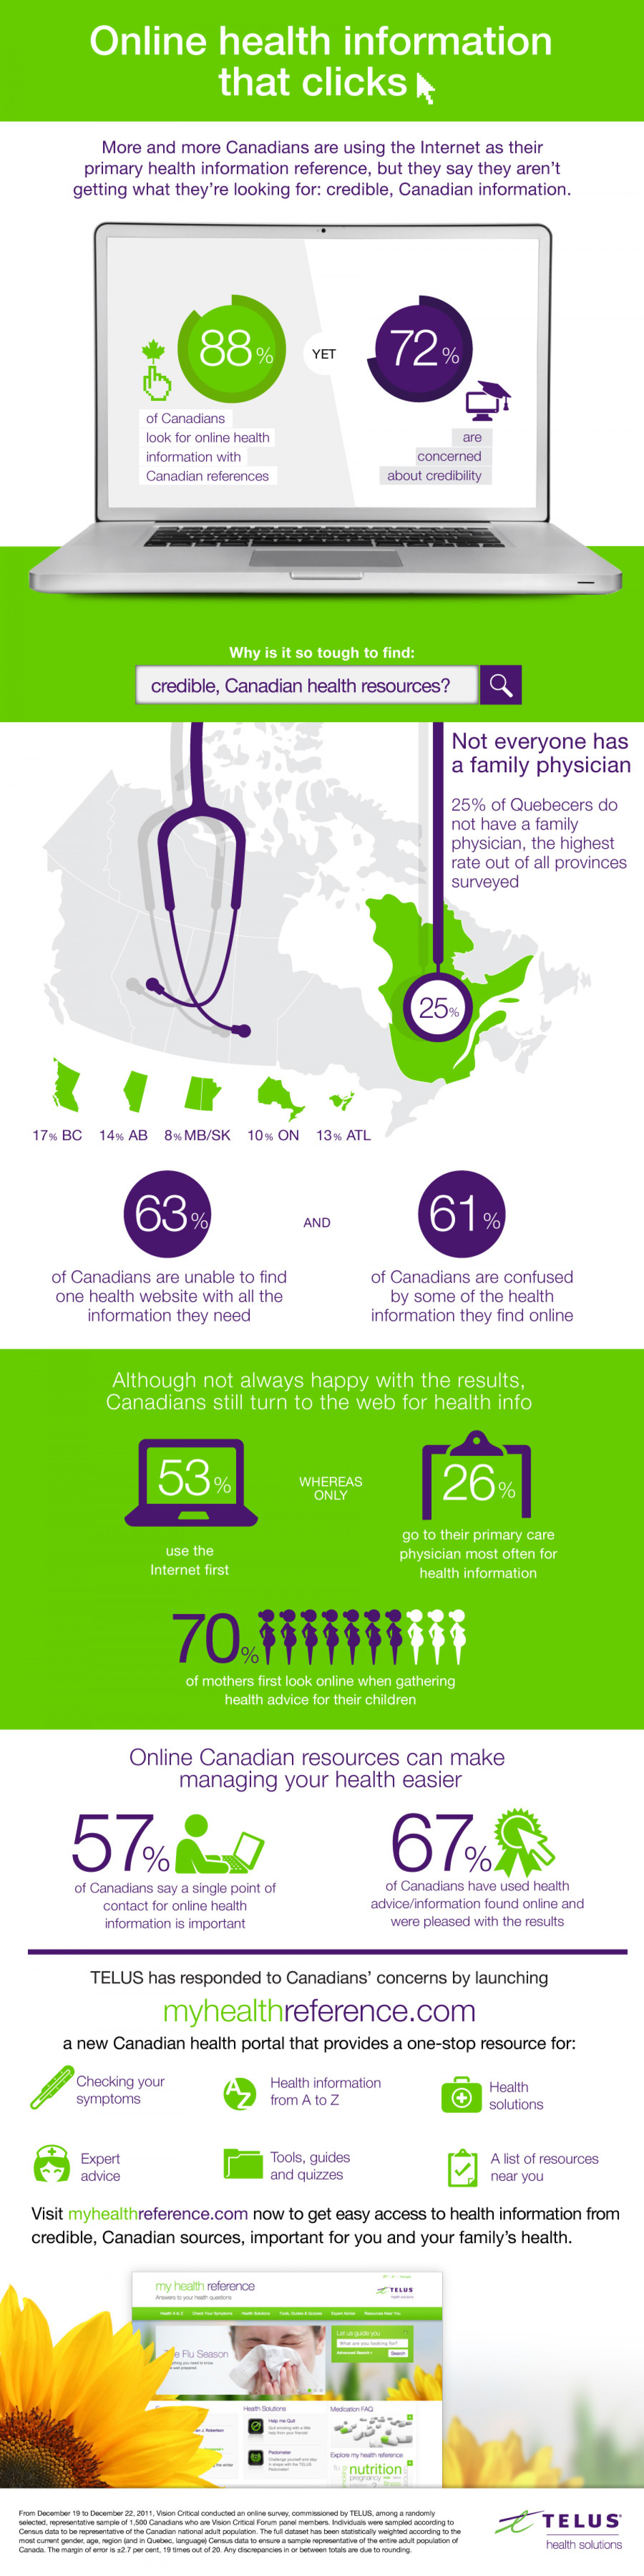 Telus My Health Reference Source Infographic